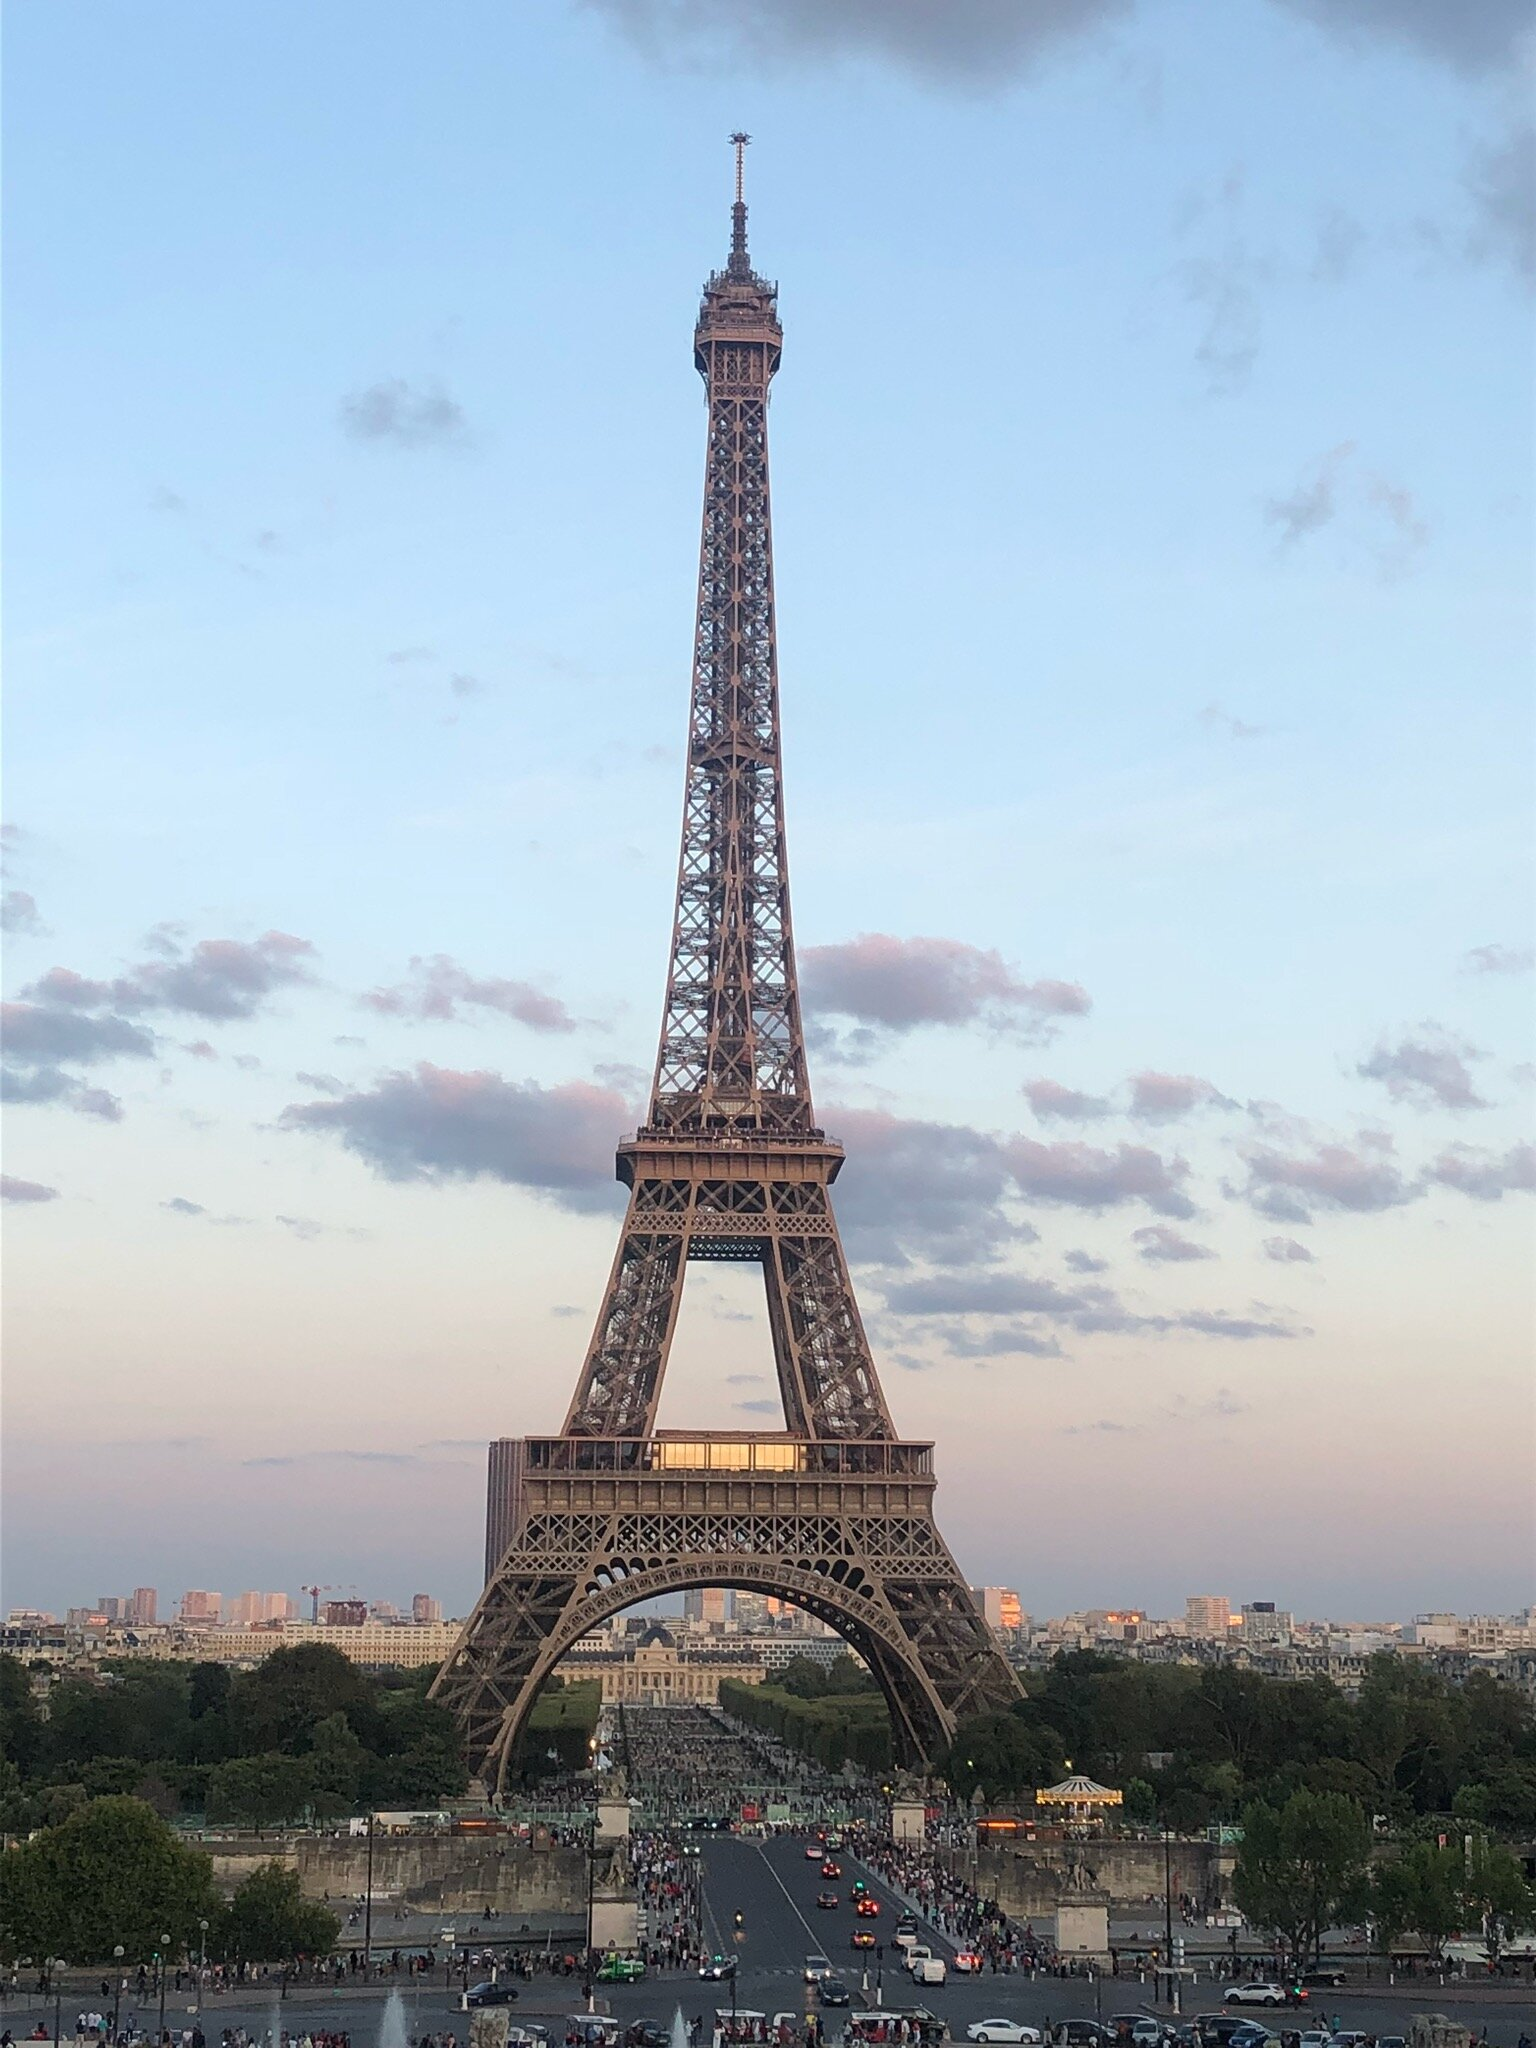 The Eiffel Tower sparkles for five minutes every hour, on the hour, in the evenings.